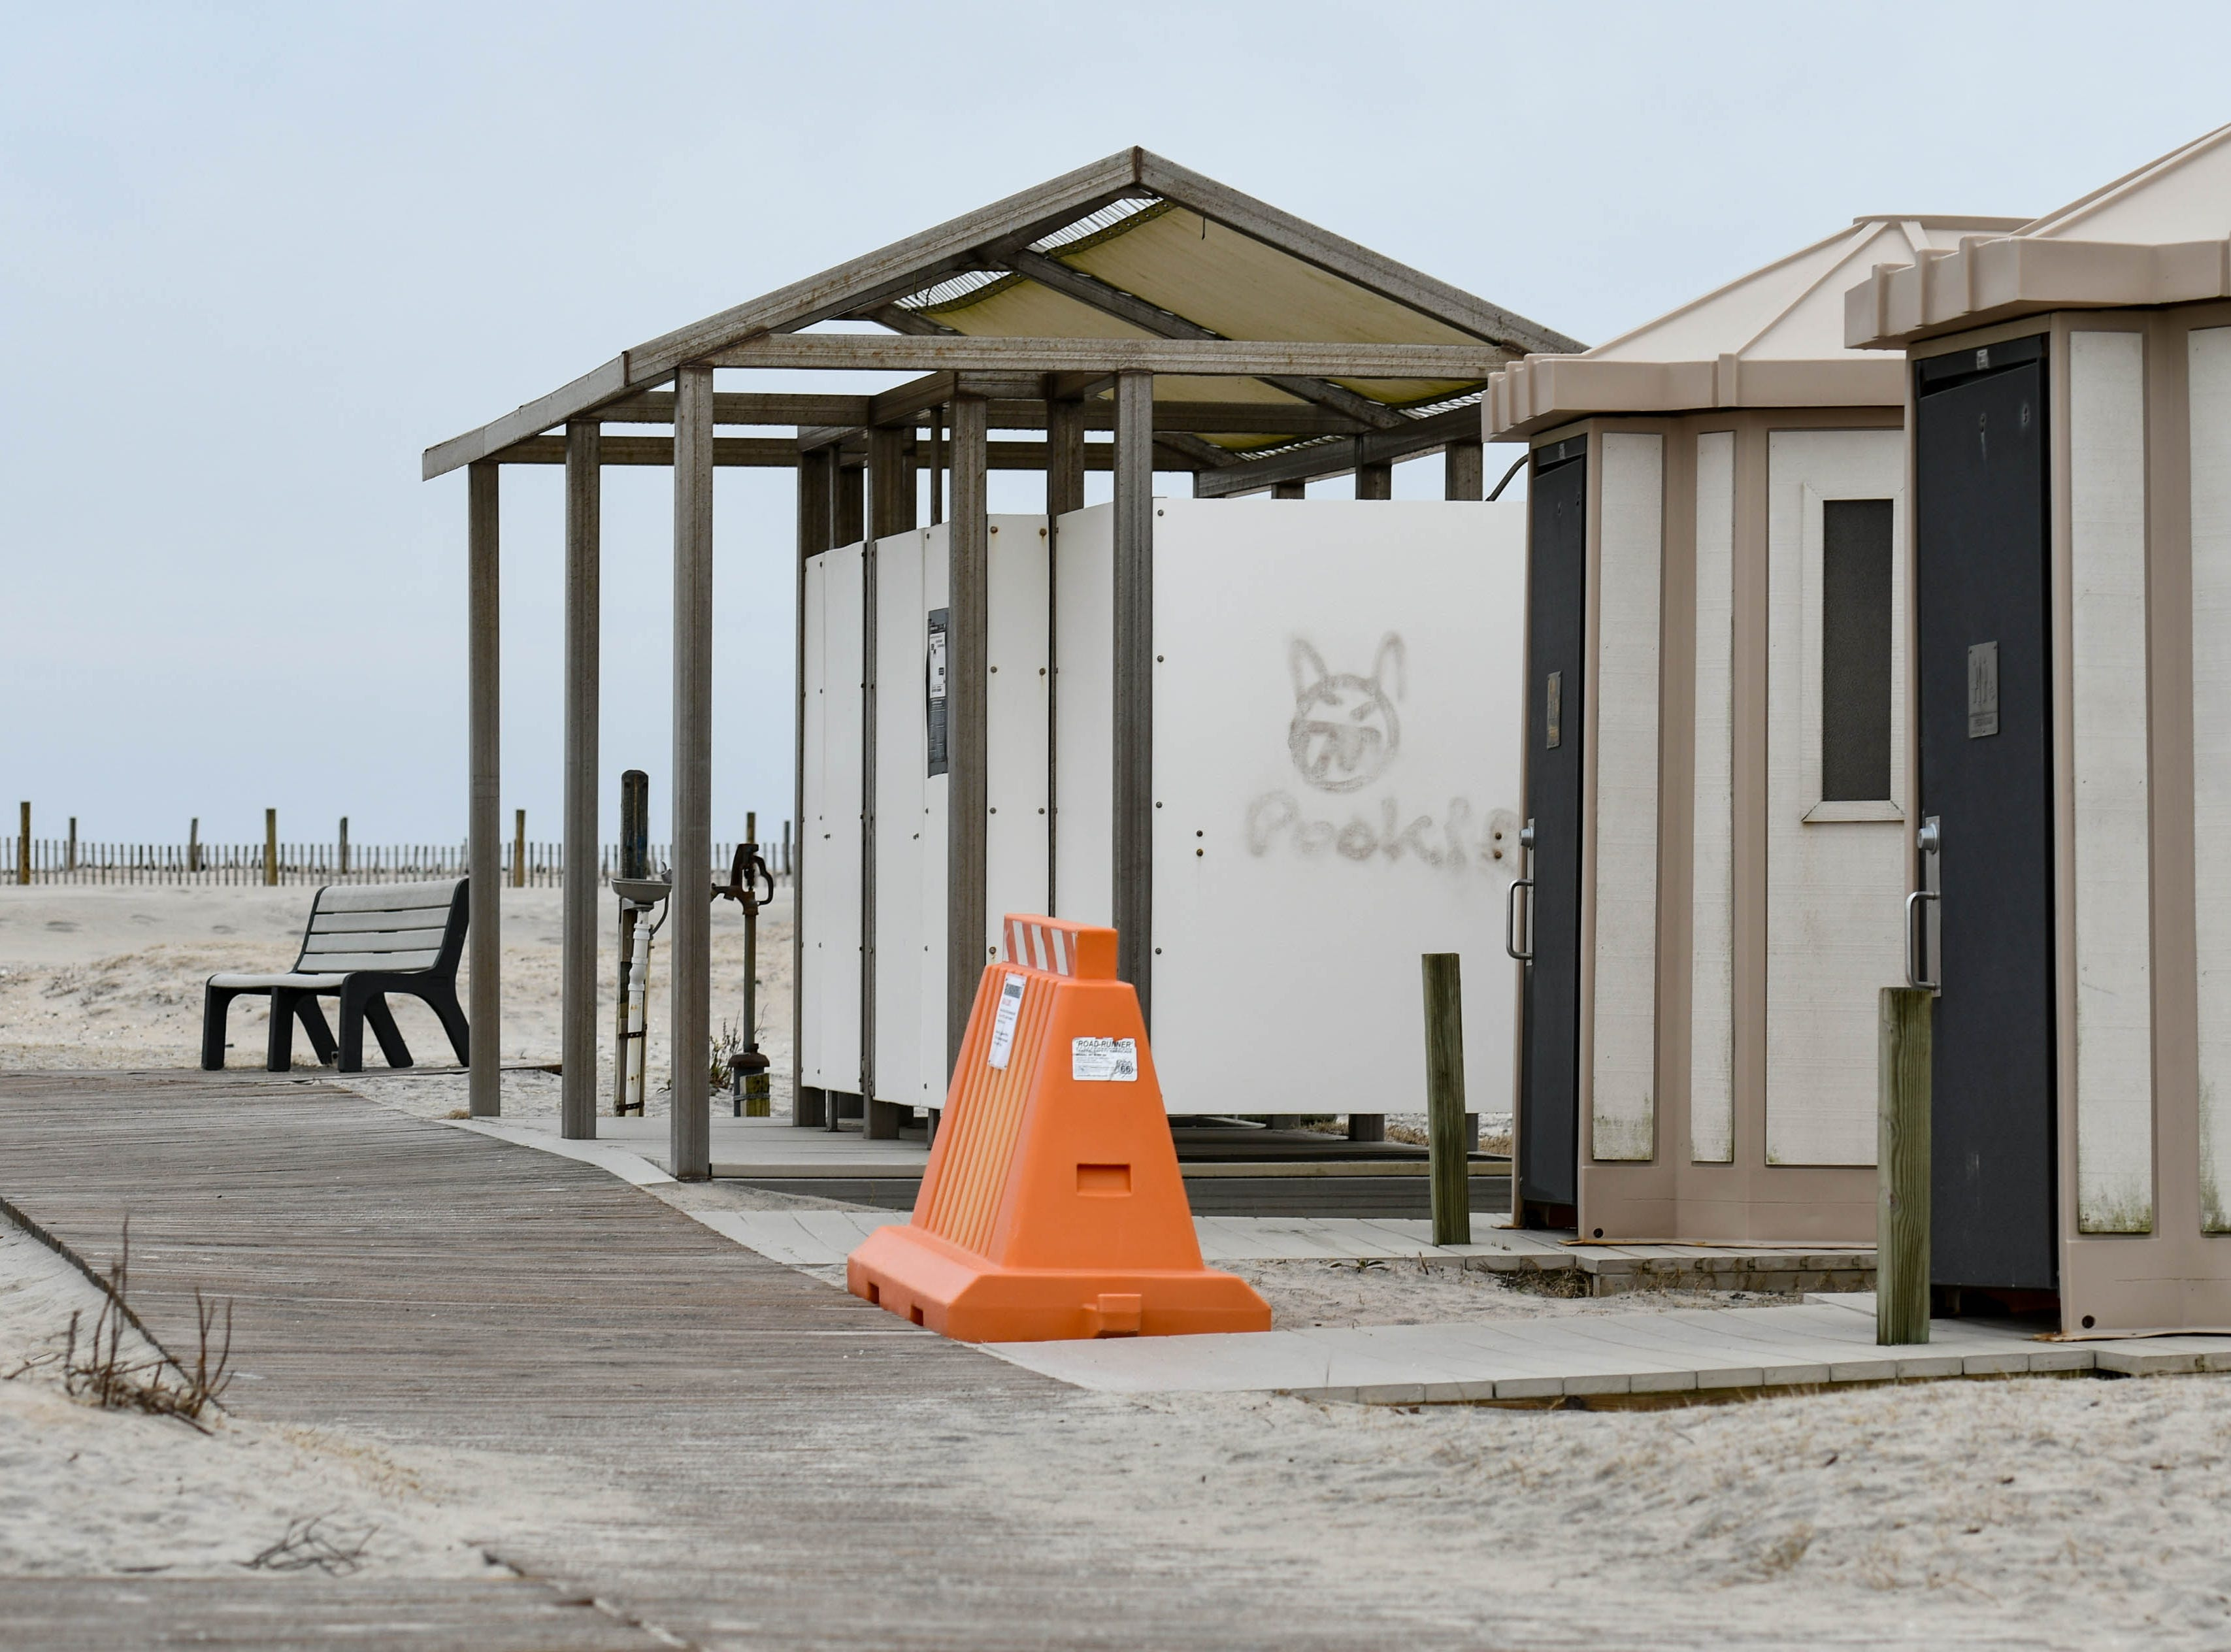 Orange barriers block off bathrooms at Assateague National Park on Thursday, Jan 3, 2018. The park remains open during the federal government shutdown, however visitors services are not being provided.